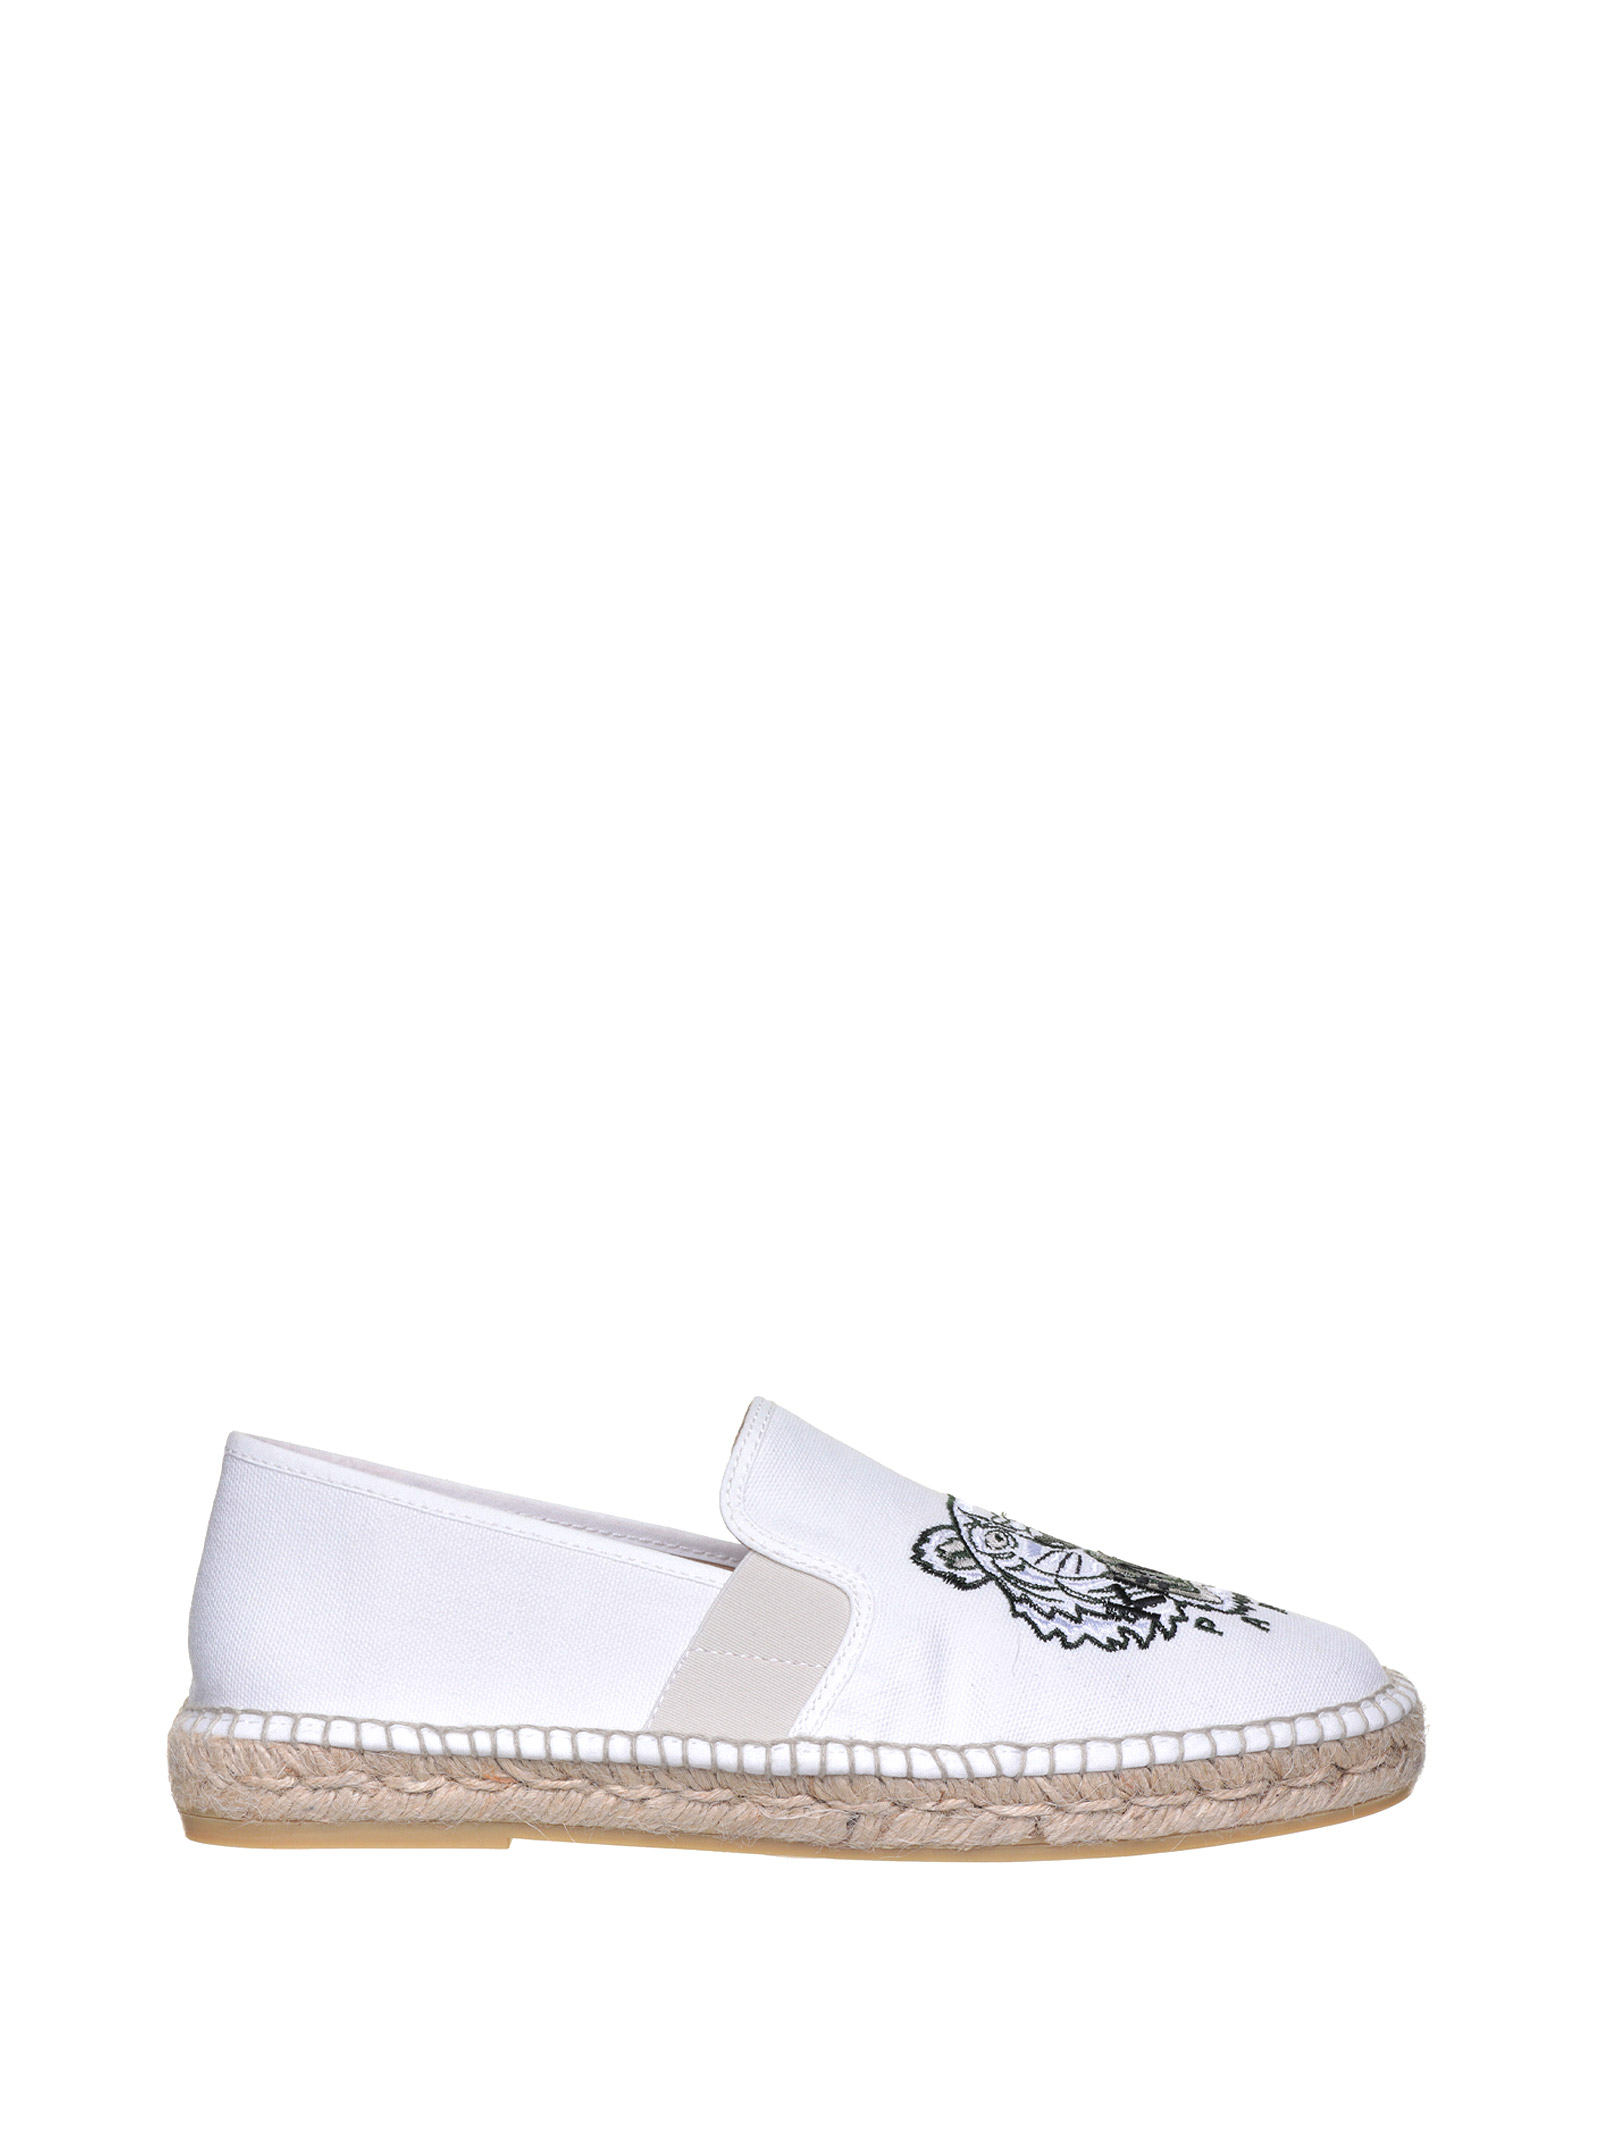 Kenzo Canvases FLAT SHOES BEIGE